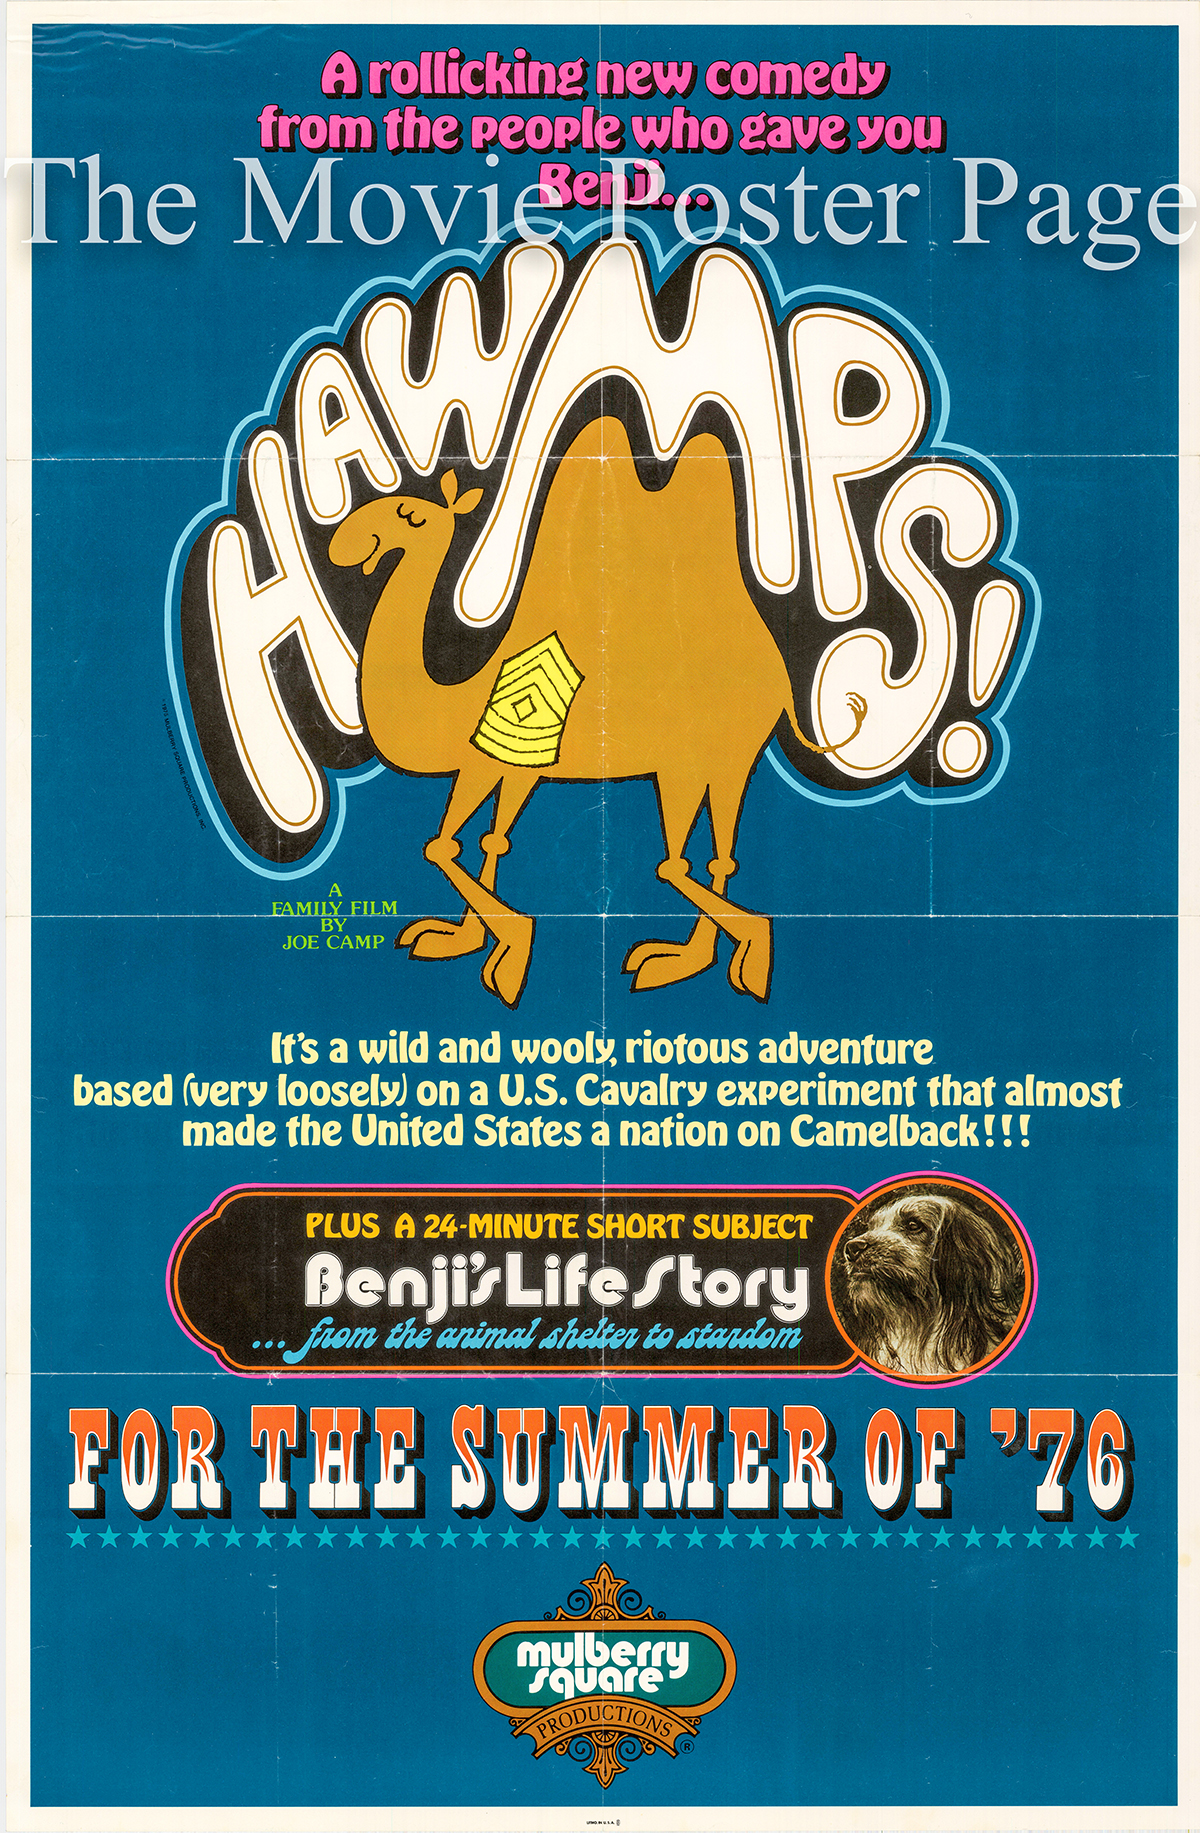 Pictured is a US one-sheet poster for the 1976 Joe Camp film Hawmps starring James Hampton as Howard Clemmons.